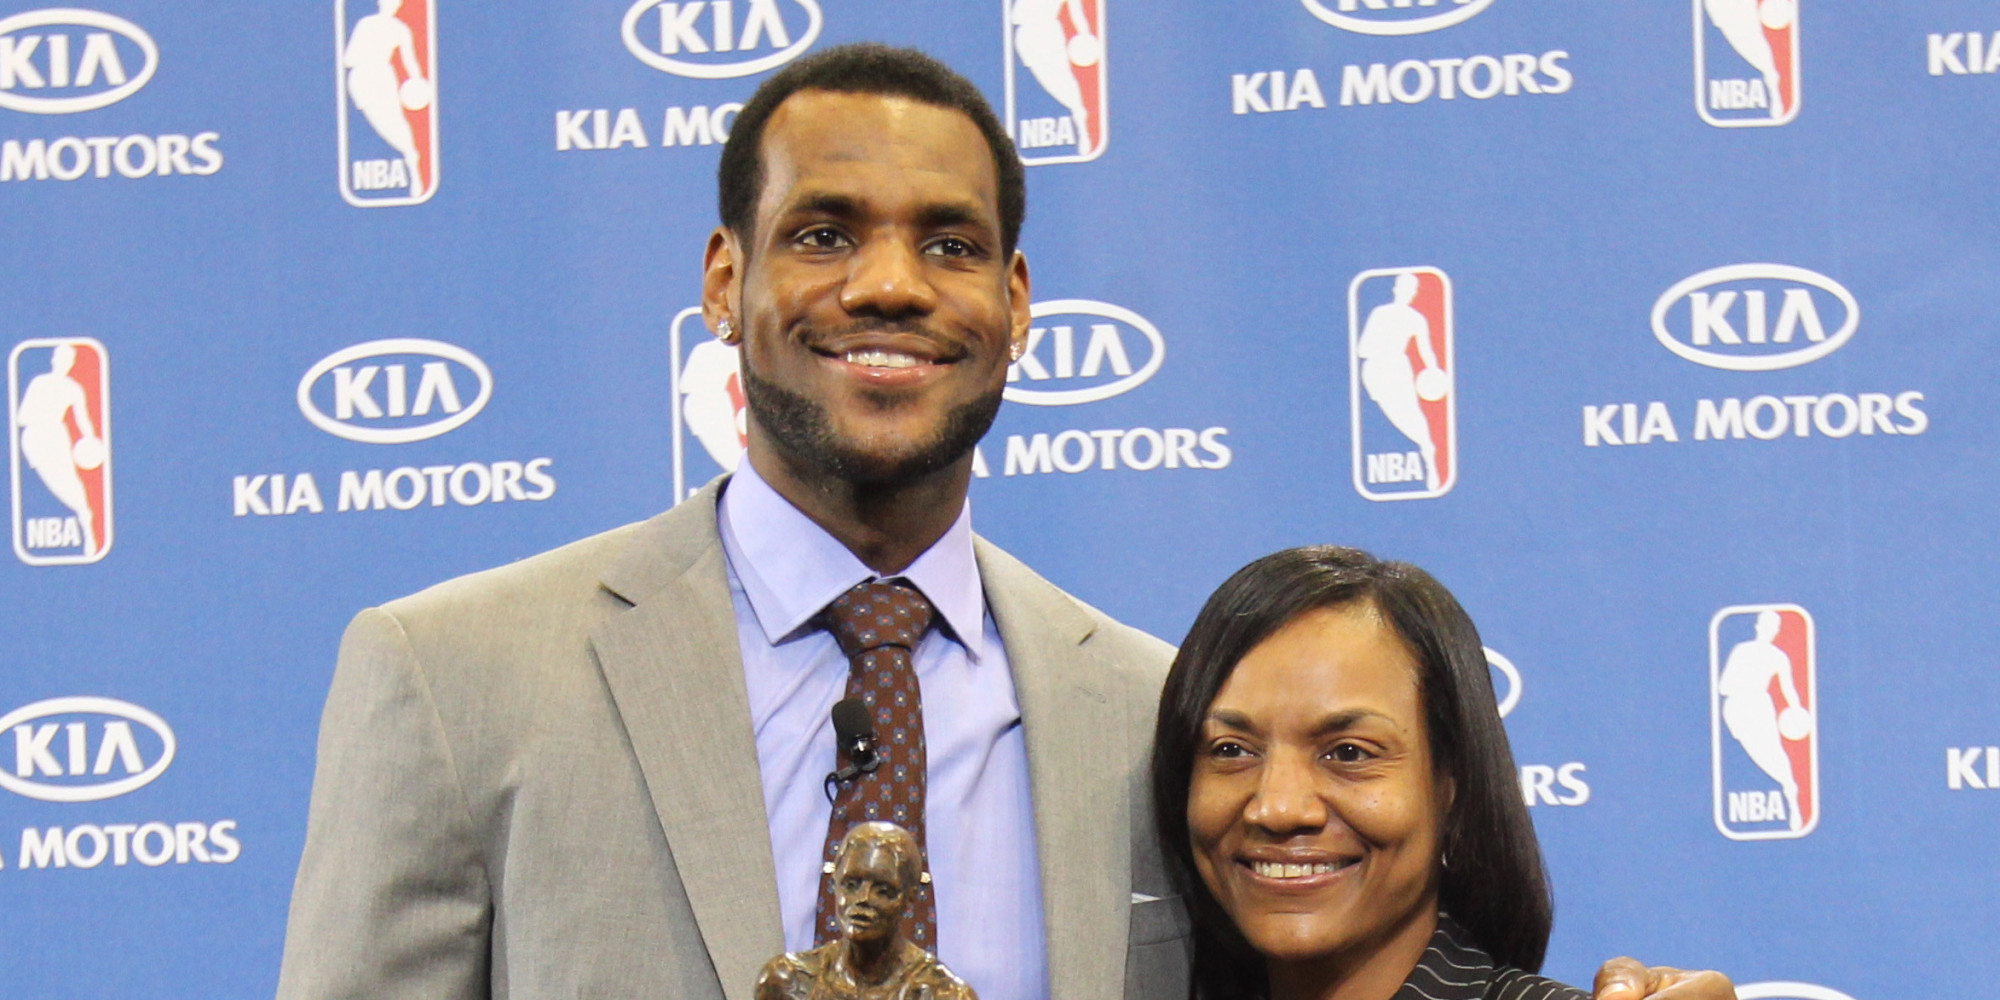 lebron james pens touching essay on being raised by a single mom lebron james pens touching essay on being raised by a single mom the huffington post